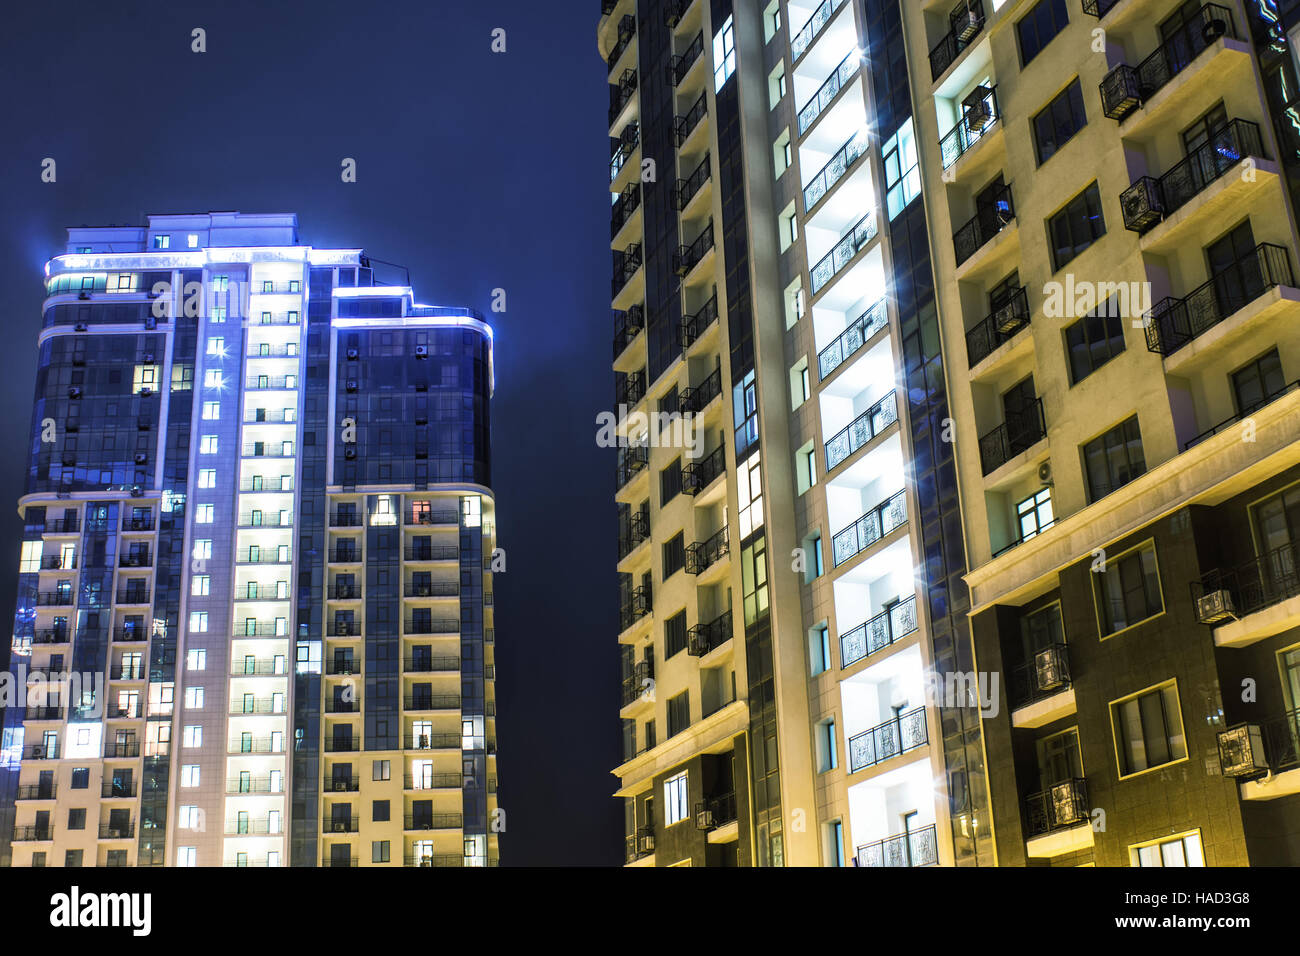 high-rise buildings at night with illumination - Stock Image